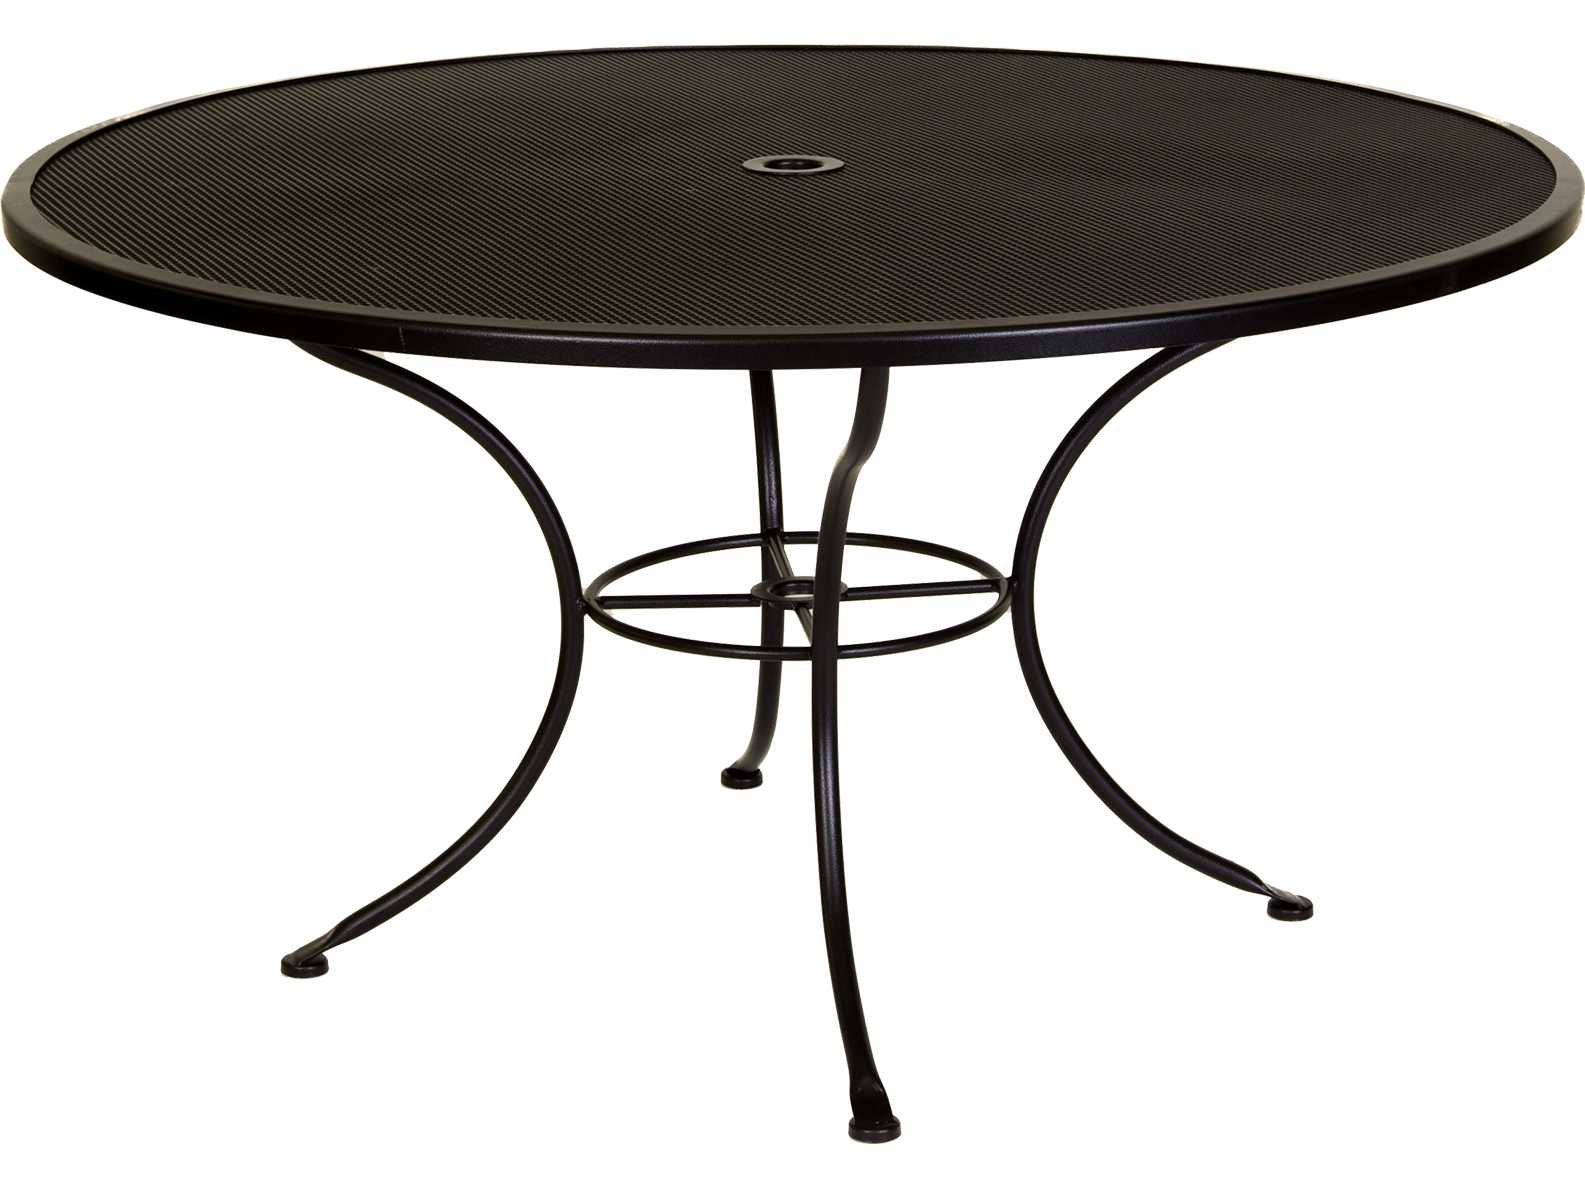 Ow Lee Micro Mesh Wrought Iron 54 Round Dining Table With